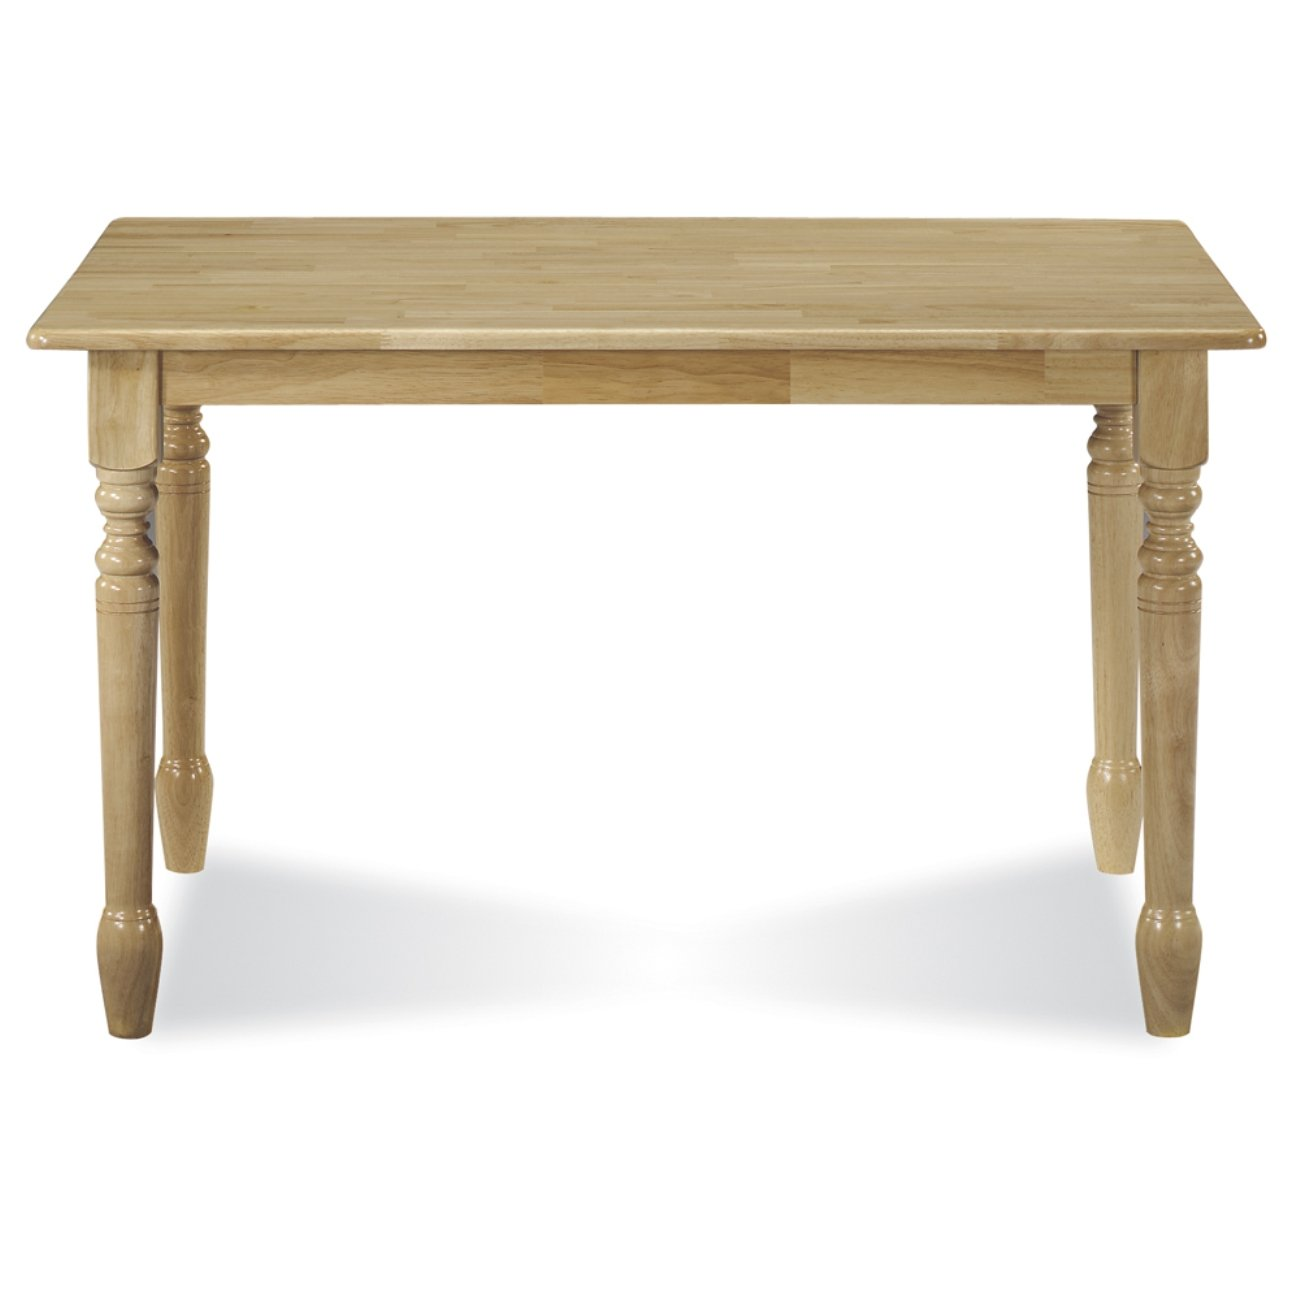 International Concepts T01-3048 30 by 48-Inch Solid Wood Top Table, Natural by International Concepts (Image #1)